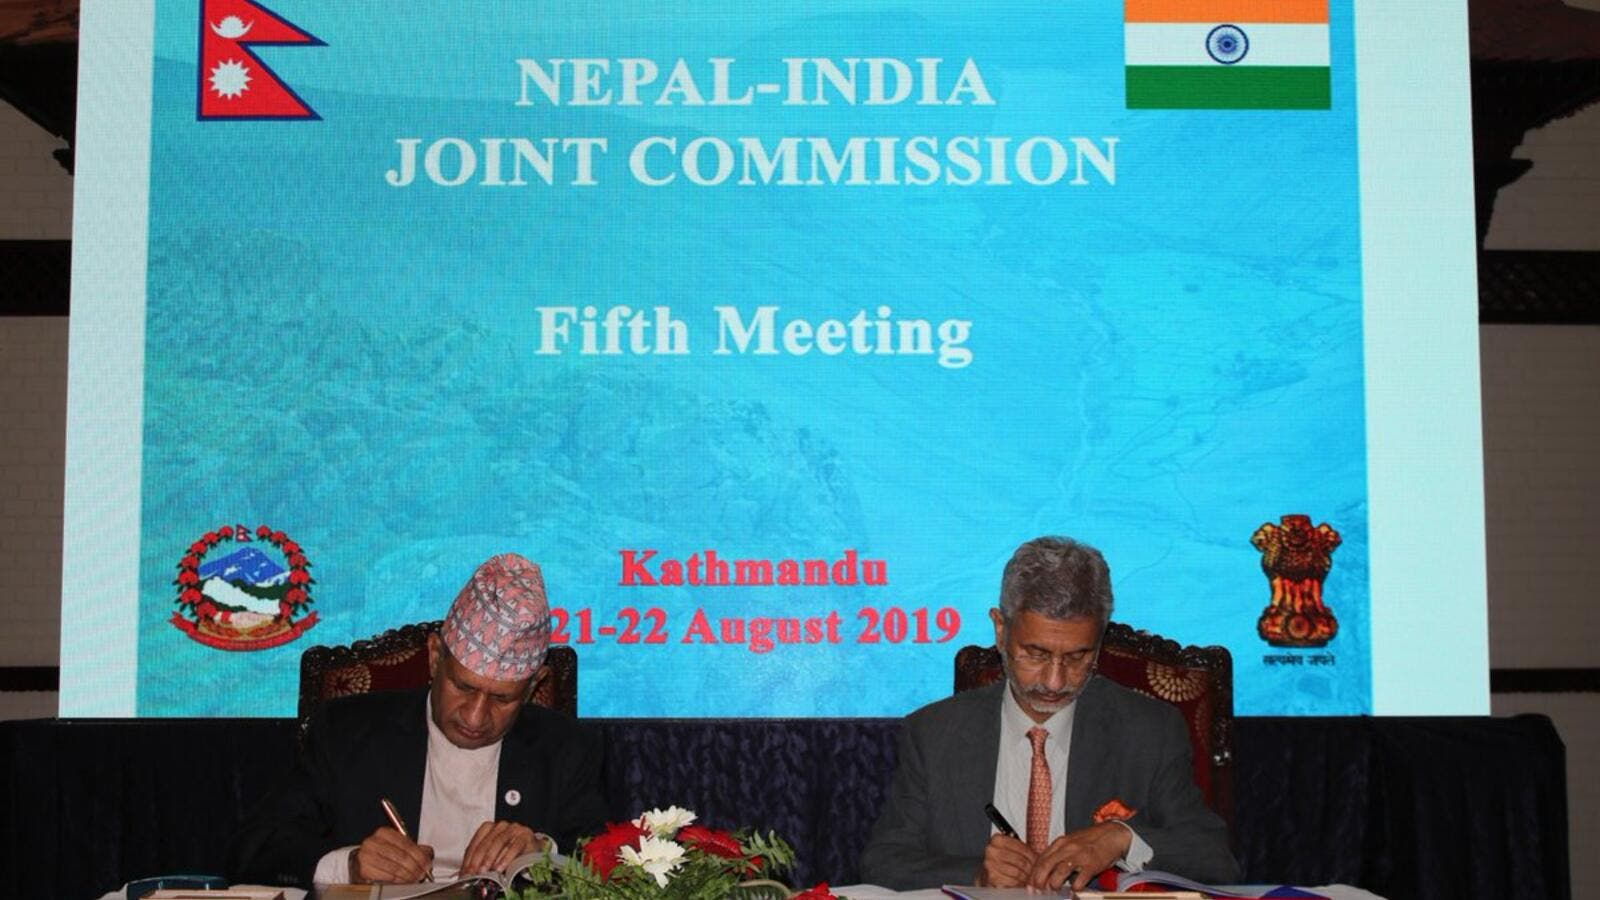 Nepal-India Joint Commission  (Twitter)